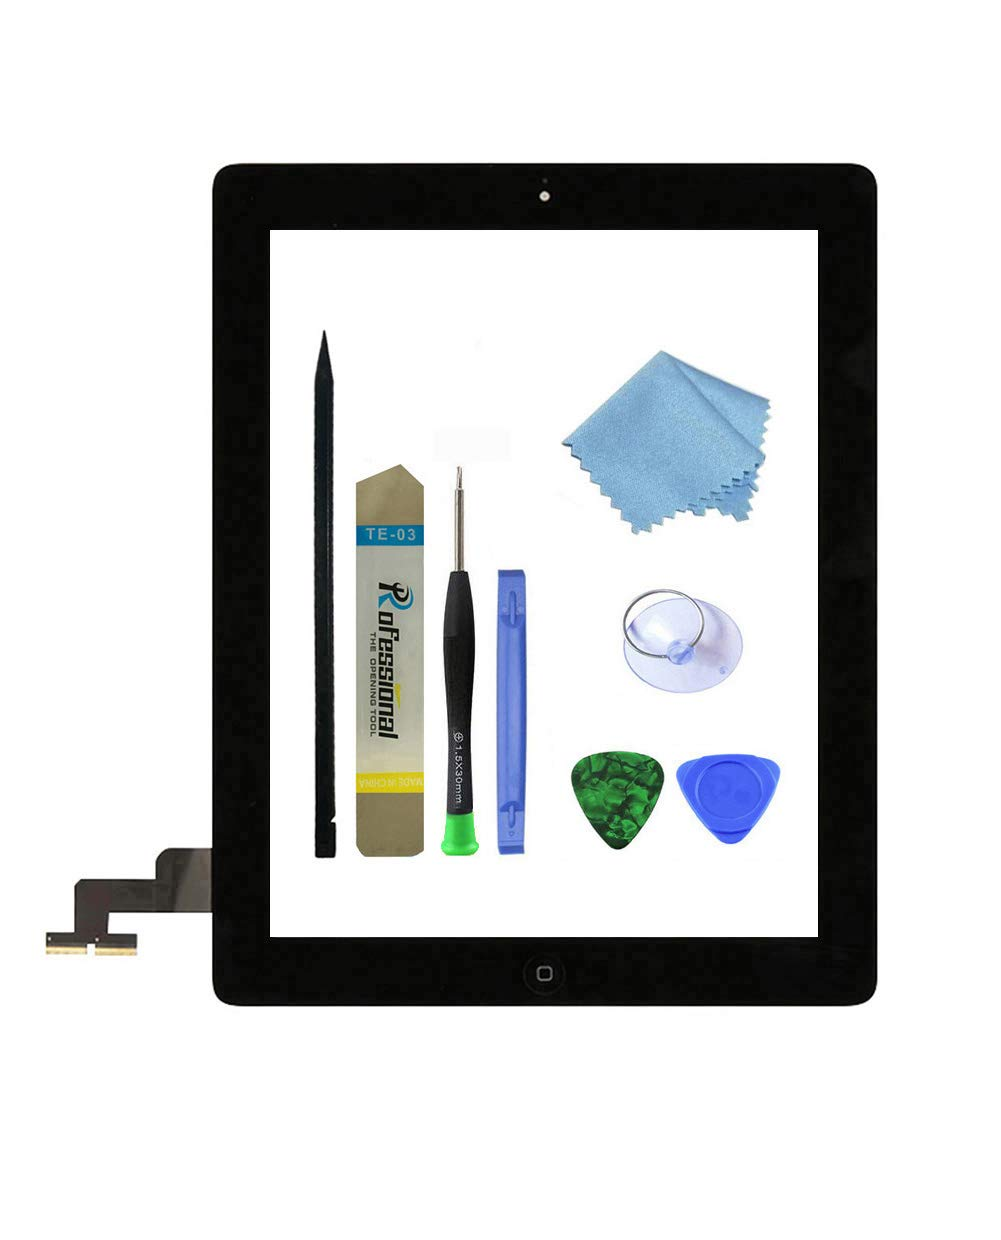 Zentop Black iPad 2 Screen Replacement,iPad 2 (2nd Generation) A1395 A1396 A1397 Touch Screen Glass Digitizer Includes Home Button,Camera Holder,Frame Bezel,Preinstalled Adhesive and tool Kit.